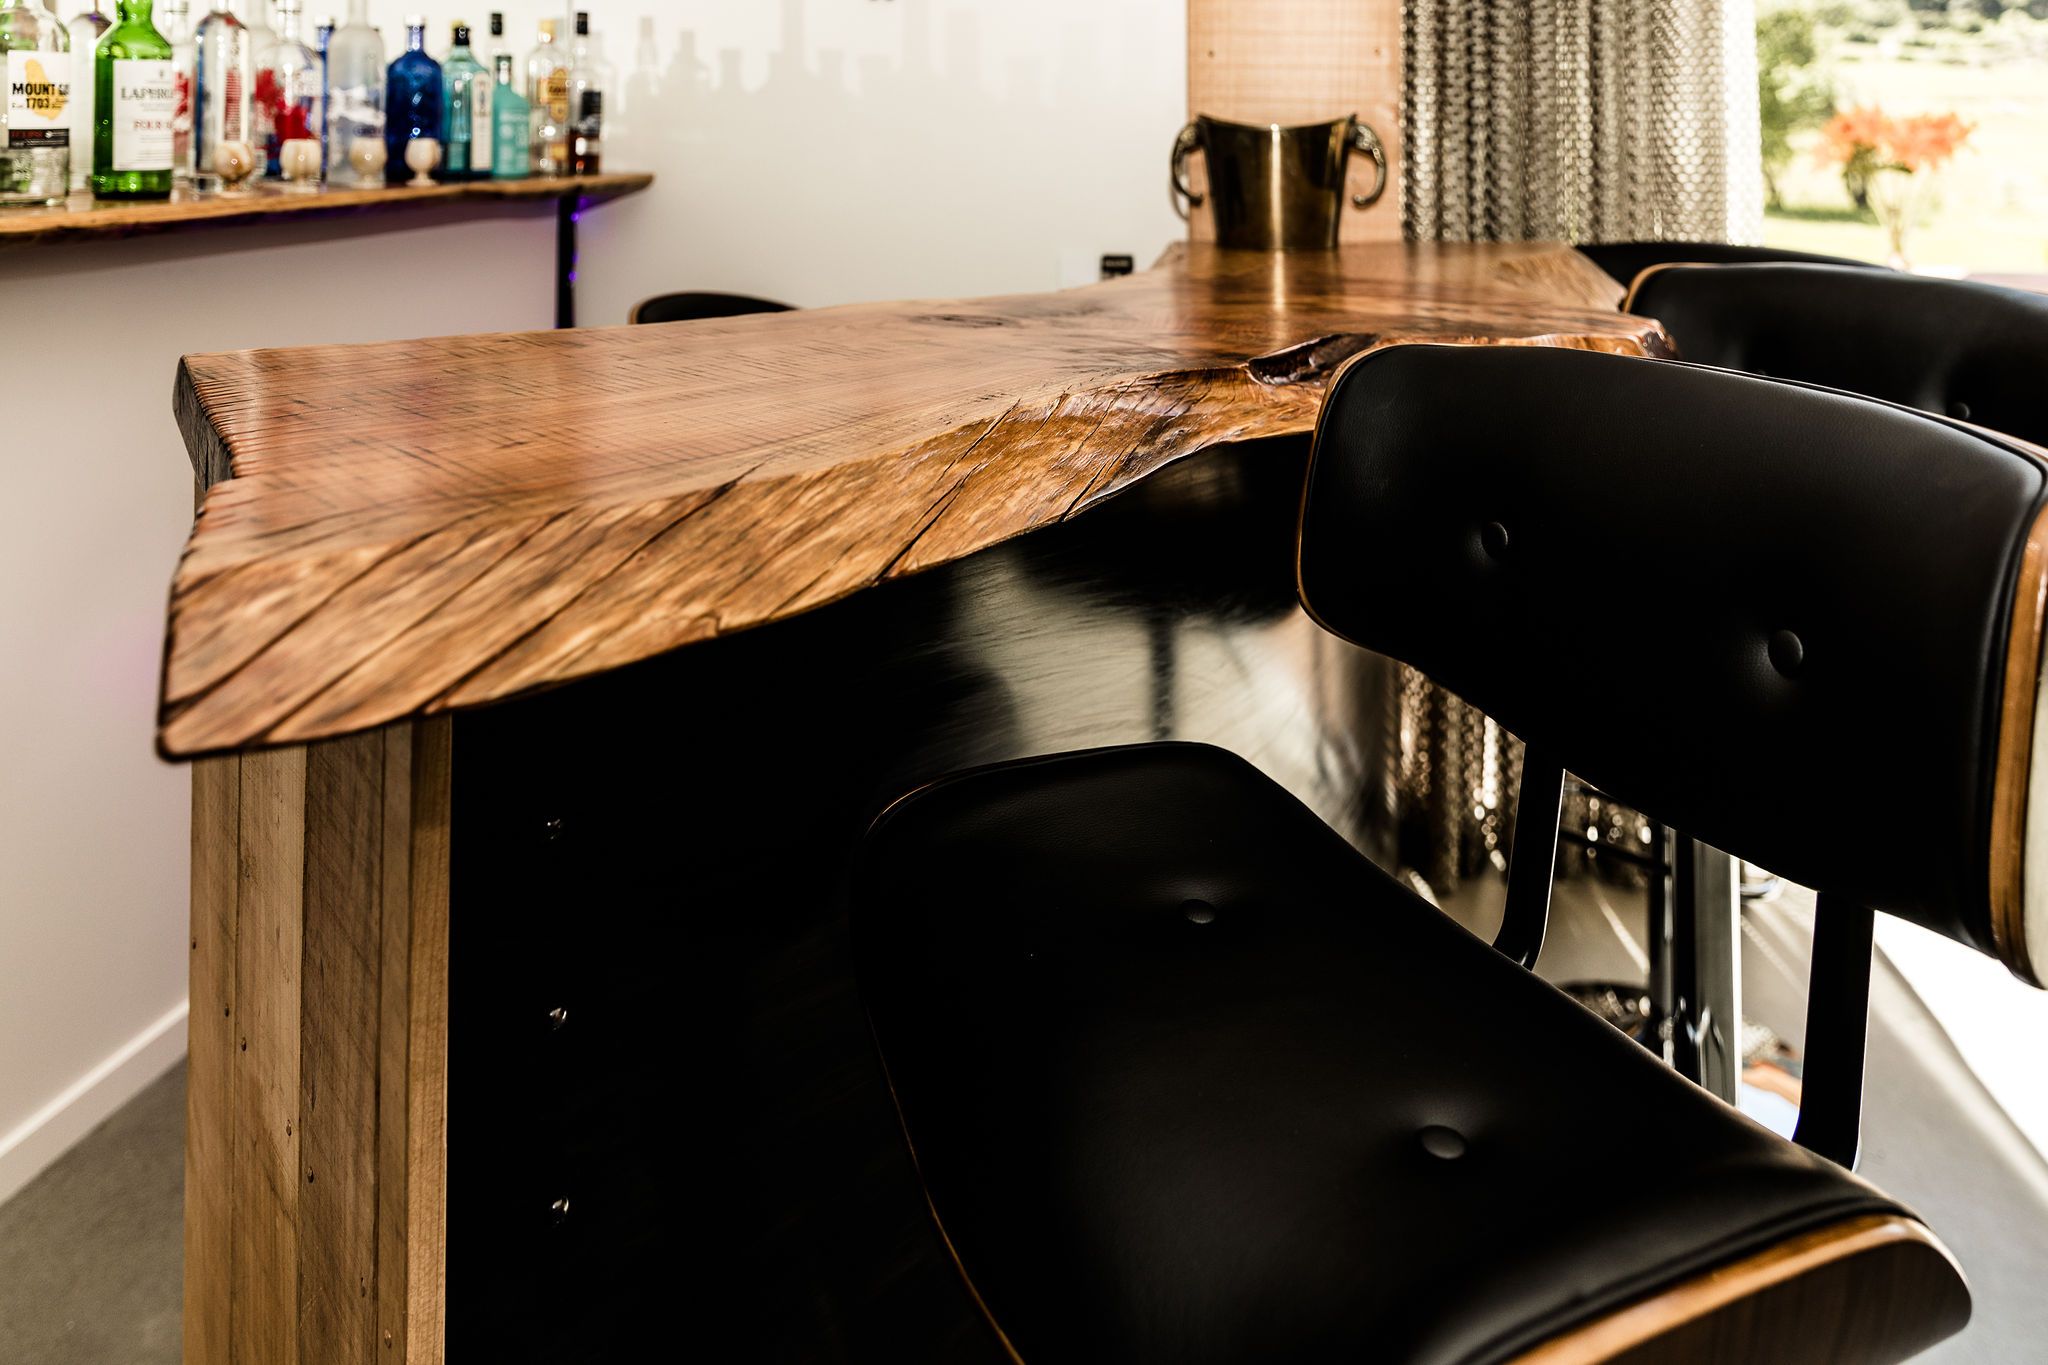 Bar and shelving